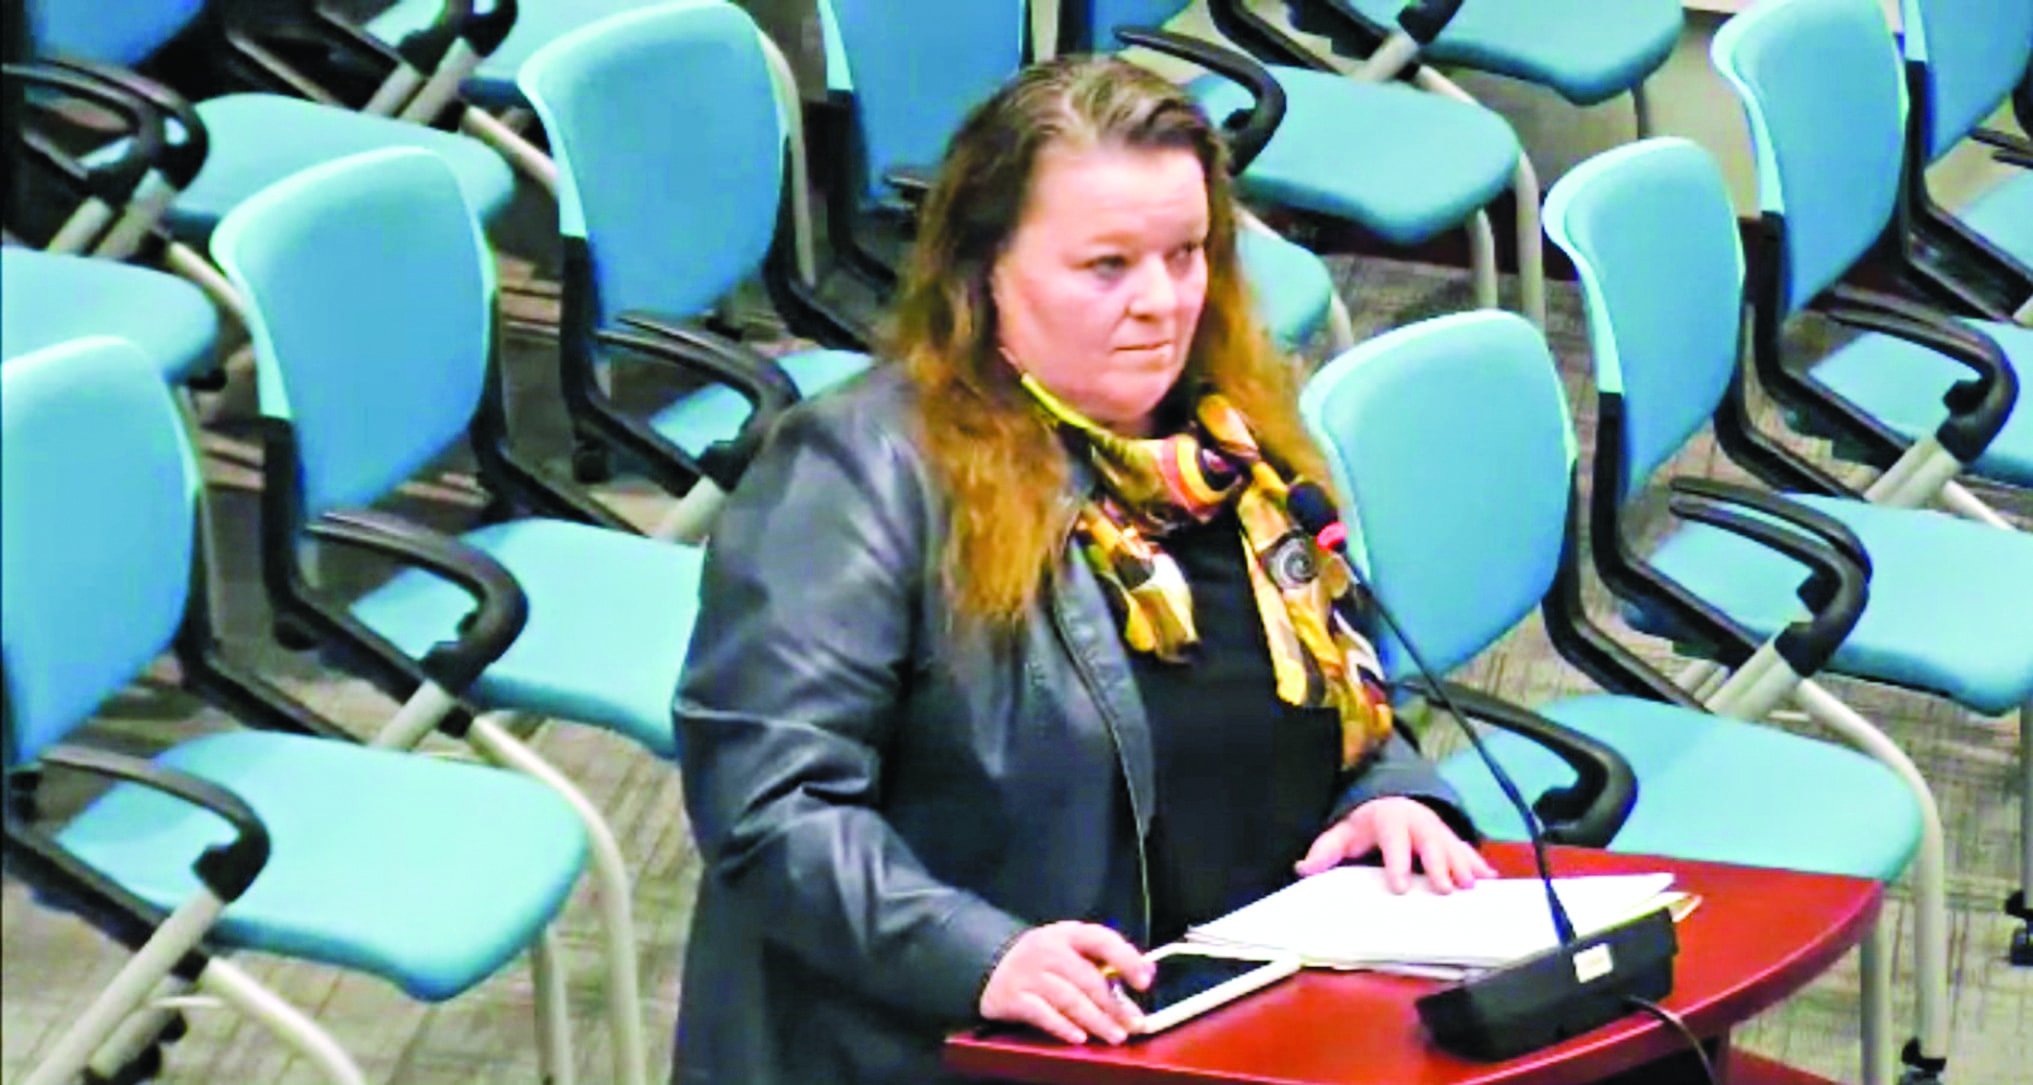 Meda Shanahan stands before city council on March 11 to ask for special permission to use electronic soft meters, as to avoid installing city mandated mechanical fare meters so their new cab company can open on time. Photo courtesy of the City of Yellowknife